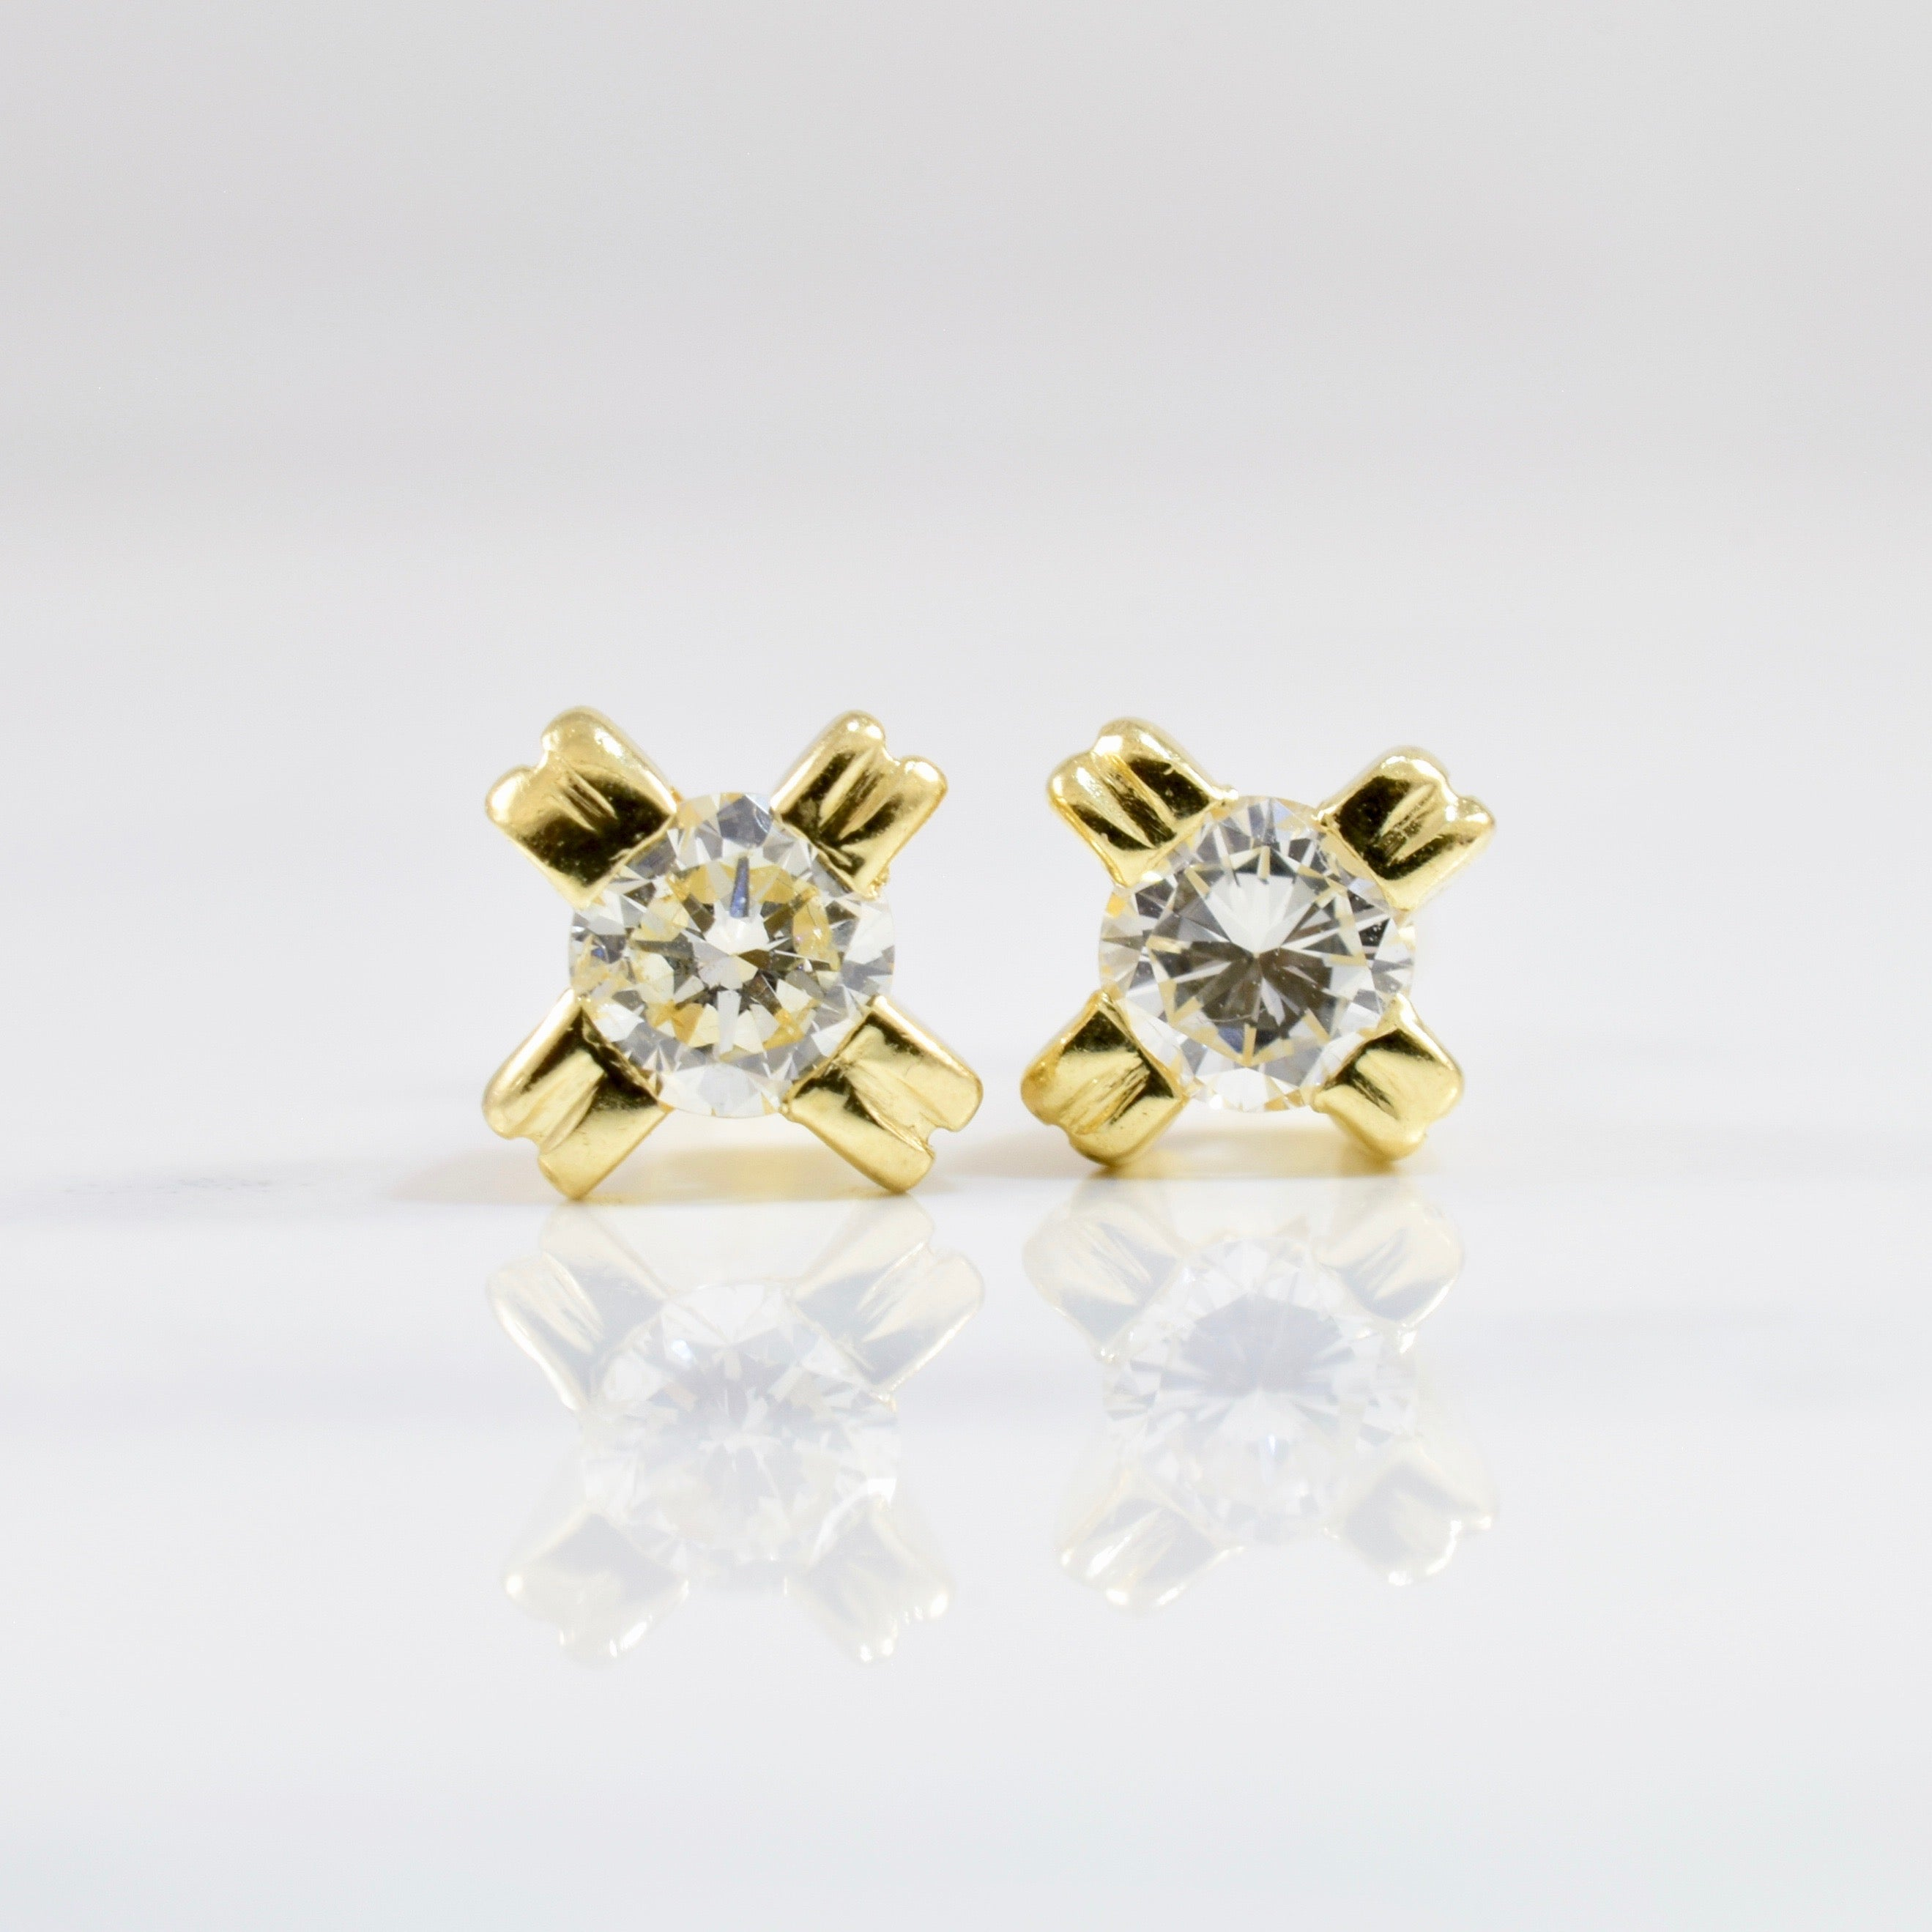 Double Prong Diamond Stud Earrings | 0.34 ctw |